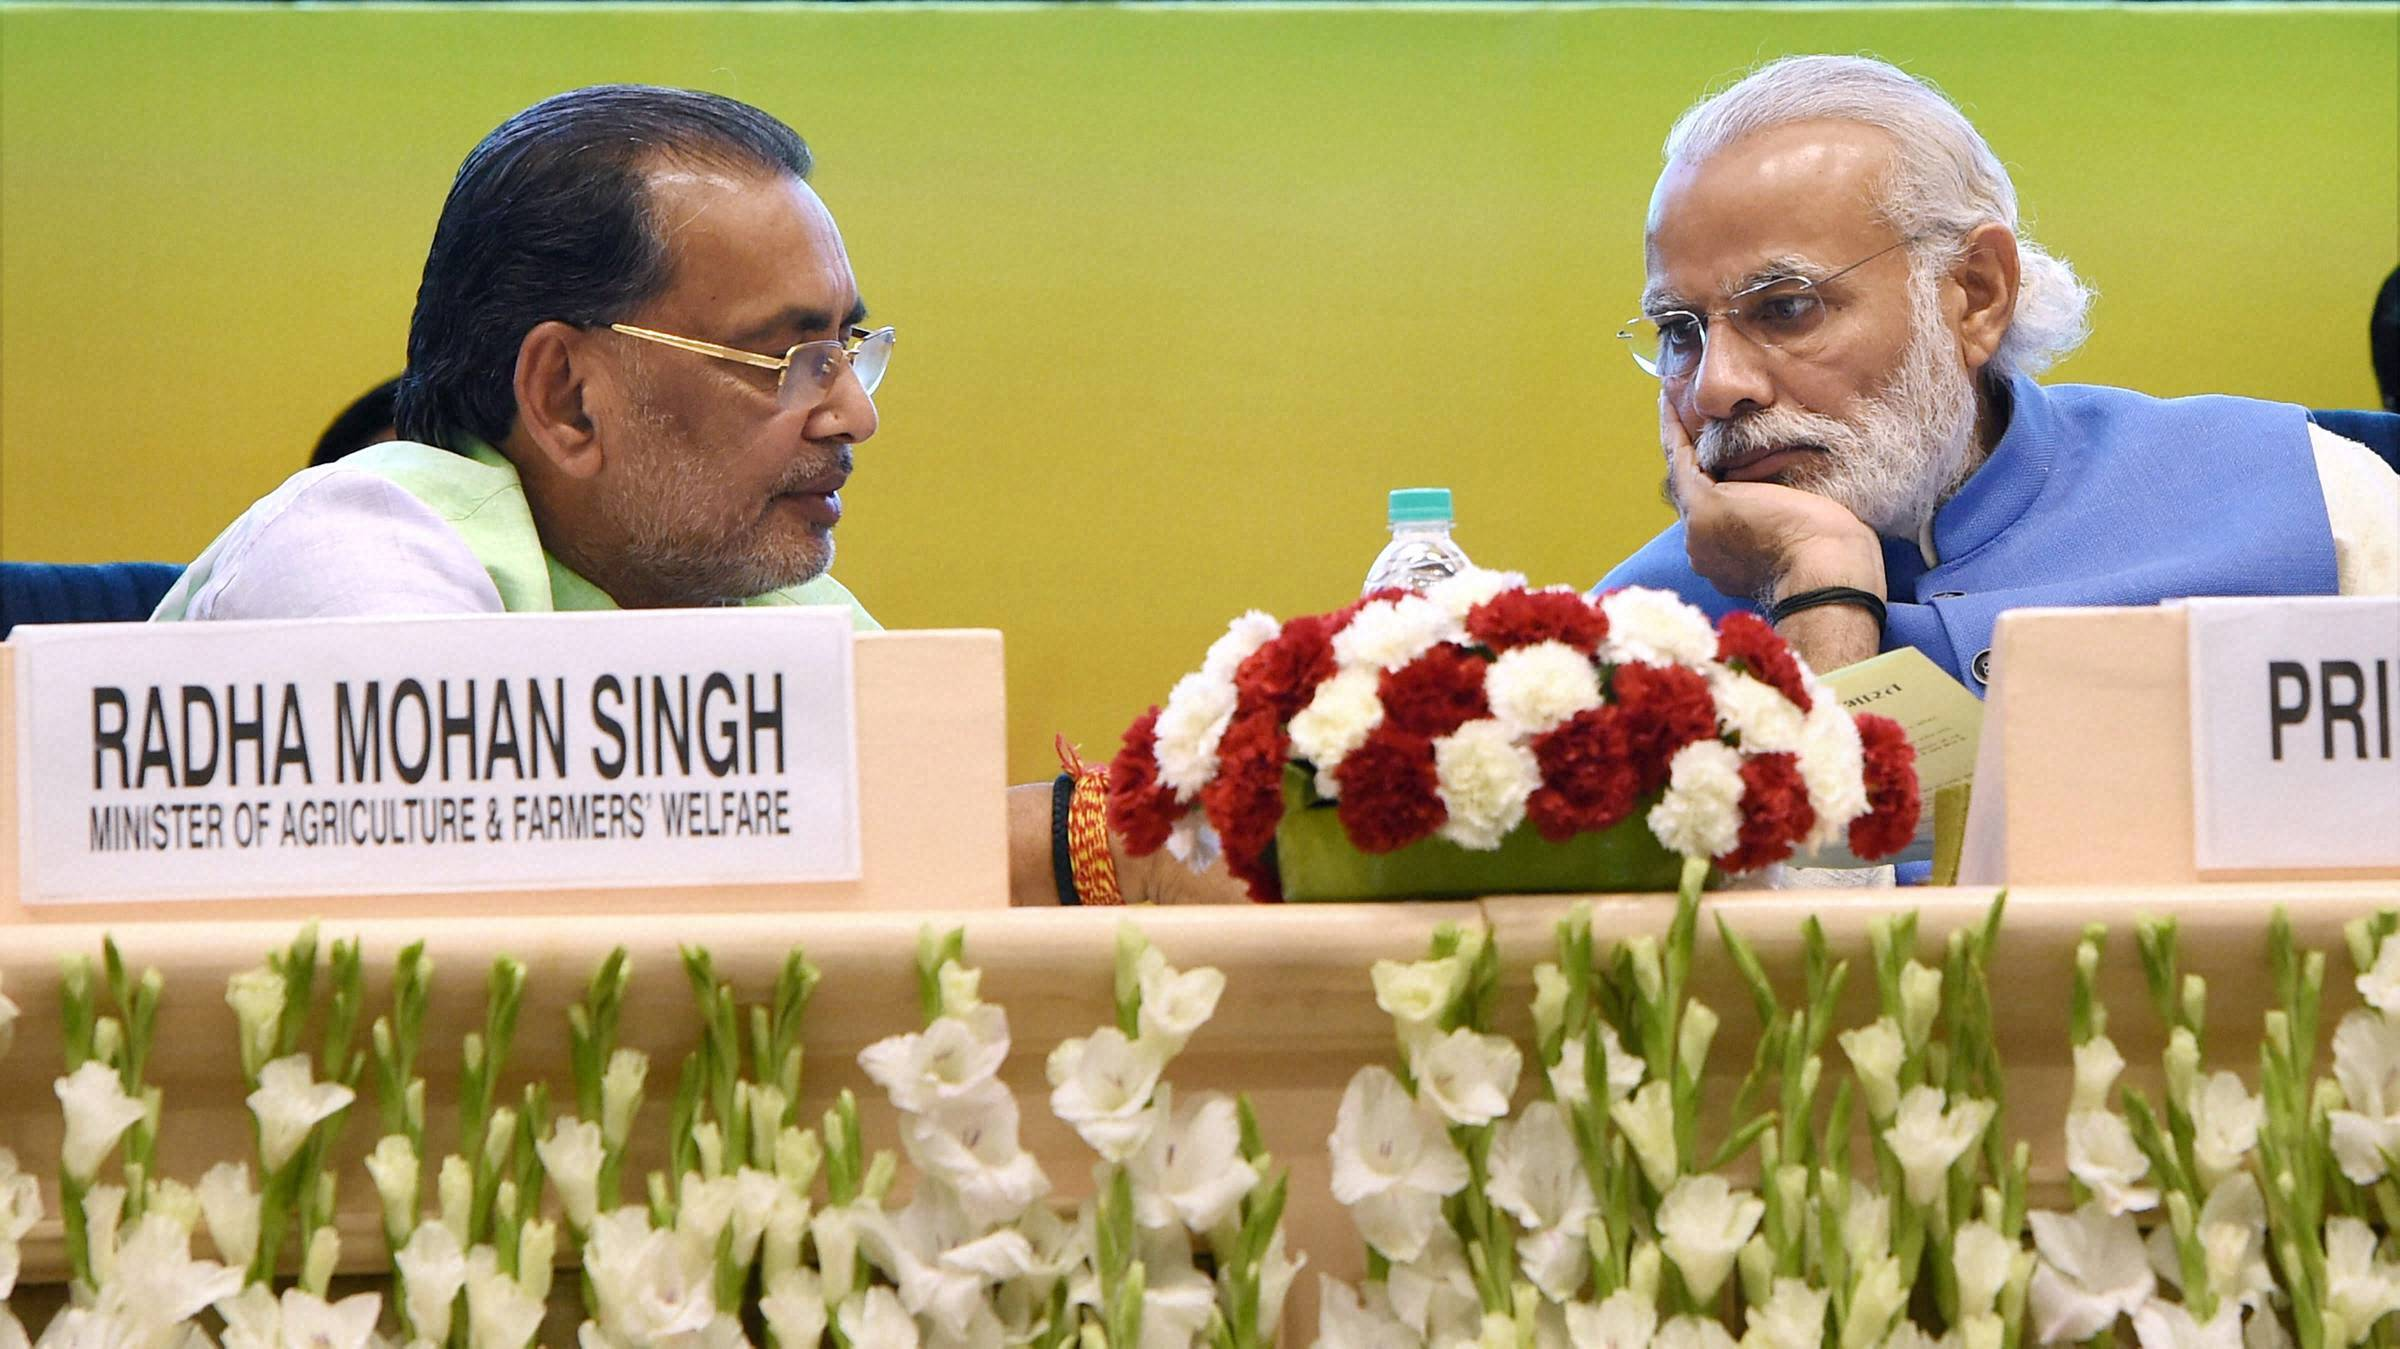 India mulling farm package ahead of 2019 general polls